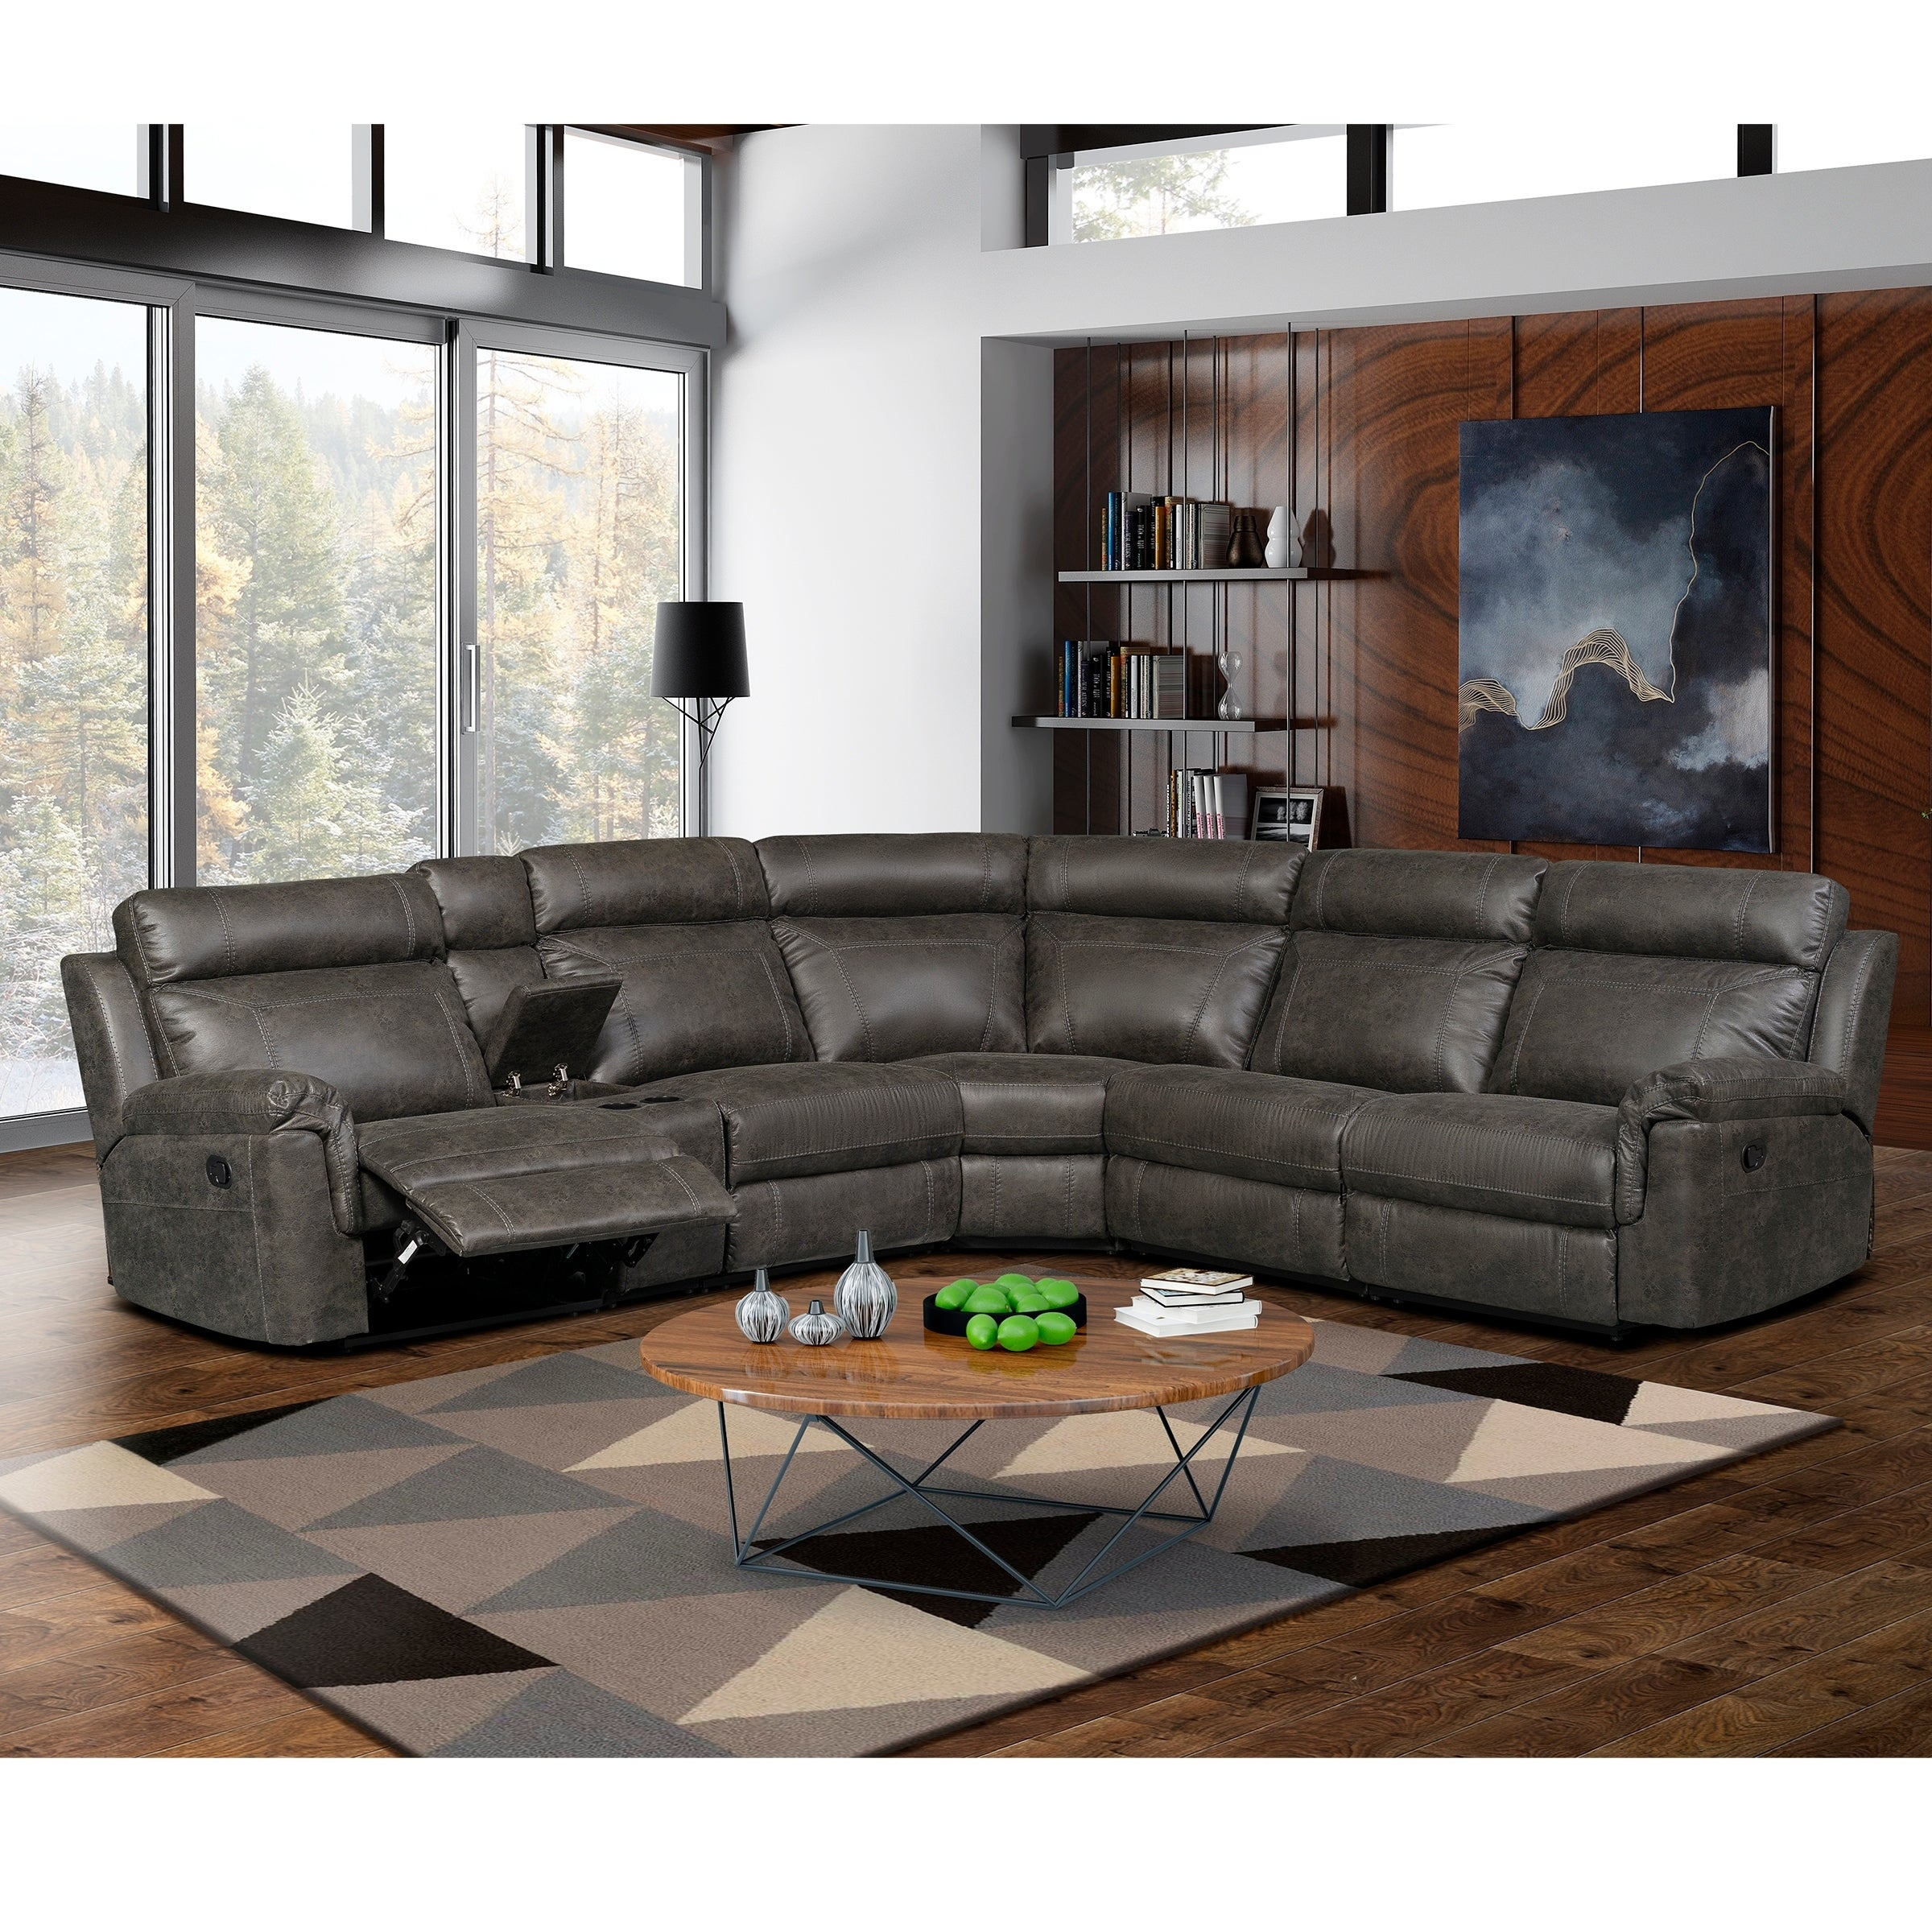 Give everyone a comfy place to sit with a sectional sofa from Sears